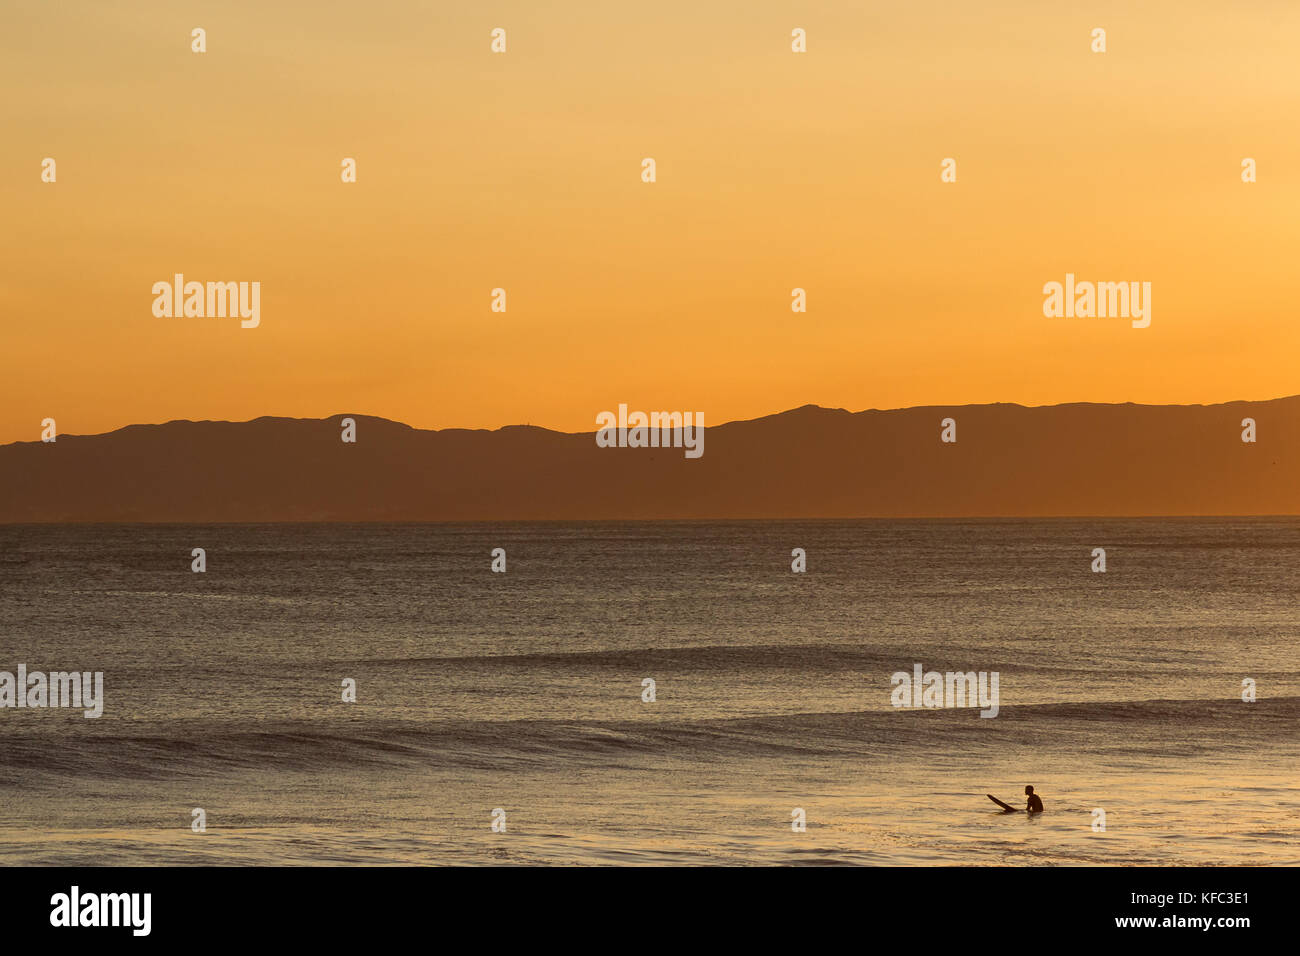 Enoshima, Kanagawa, Japan. Monday October 23rd 2017 - Stock Image